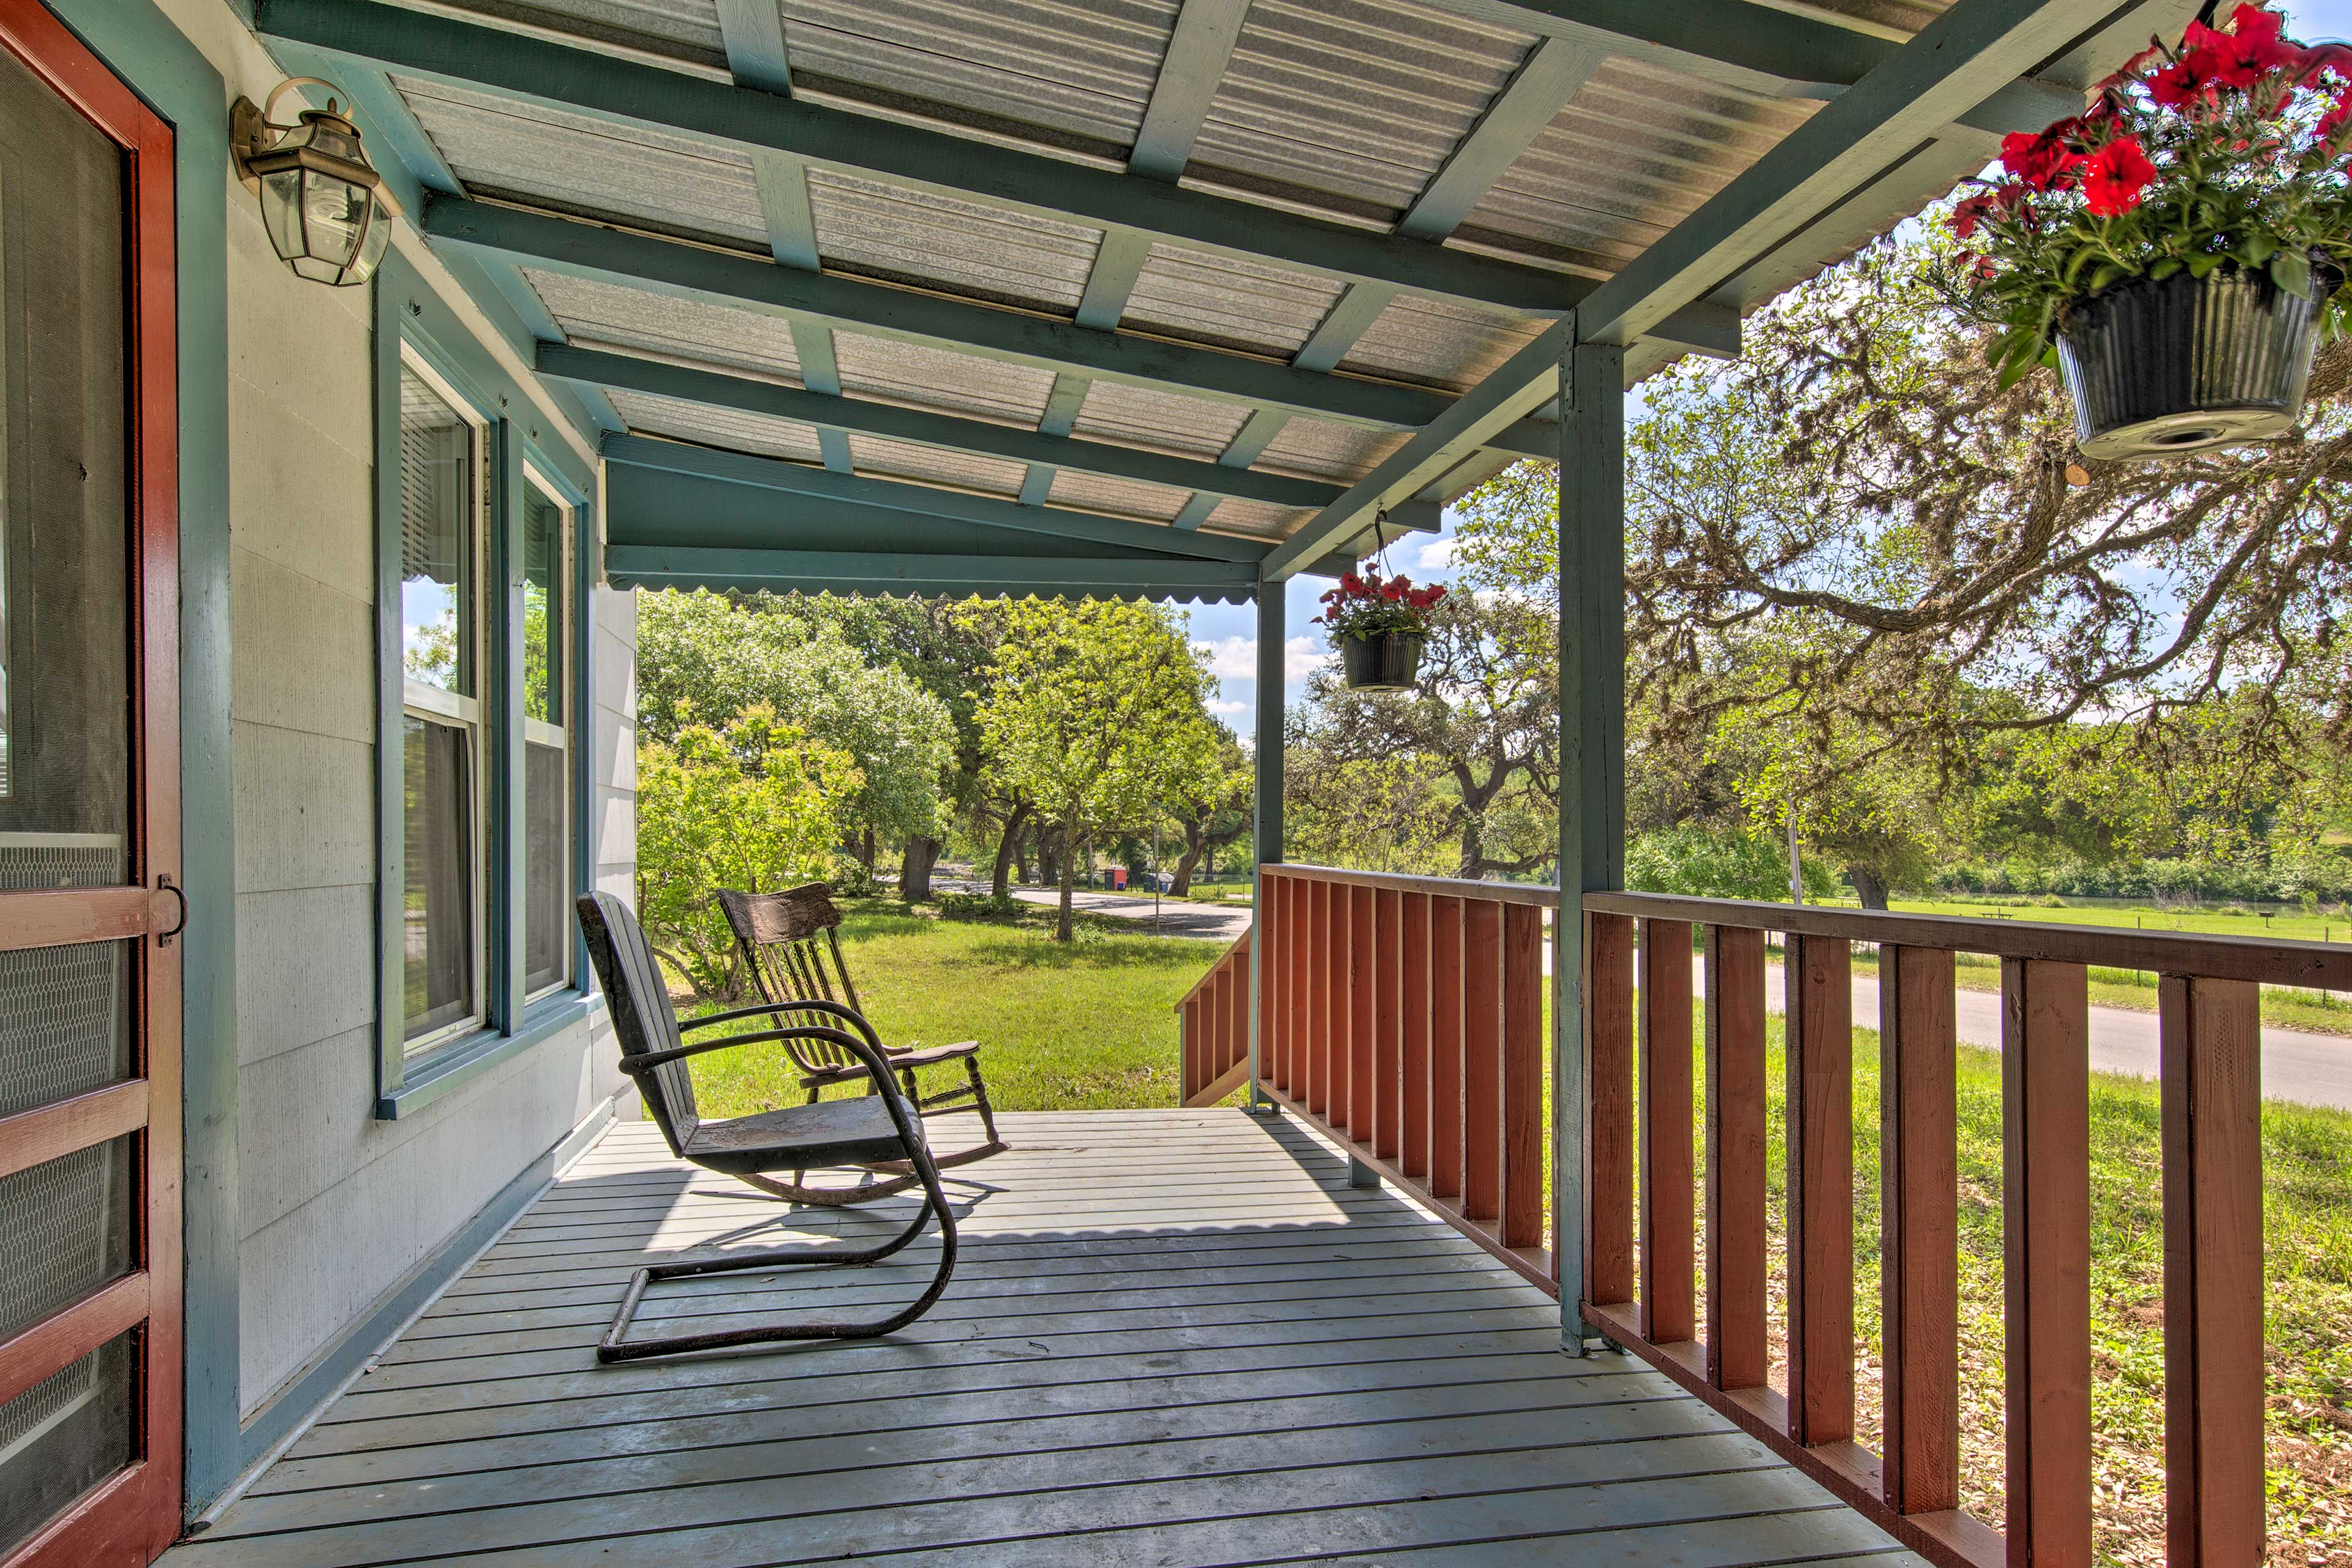 Watch the world pass by from the comfort of this shaded deck.